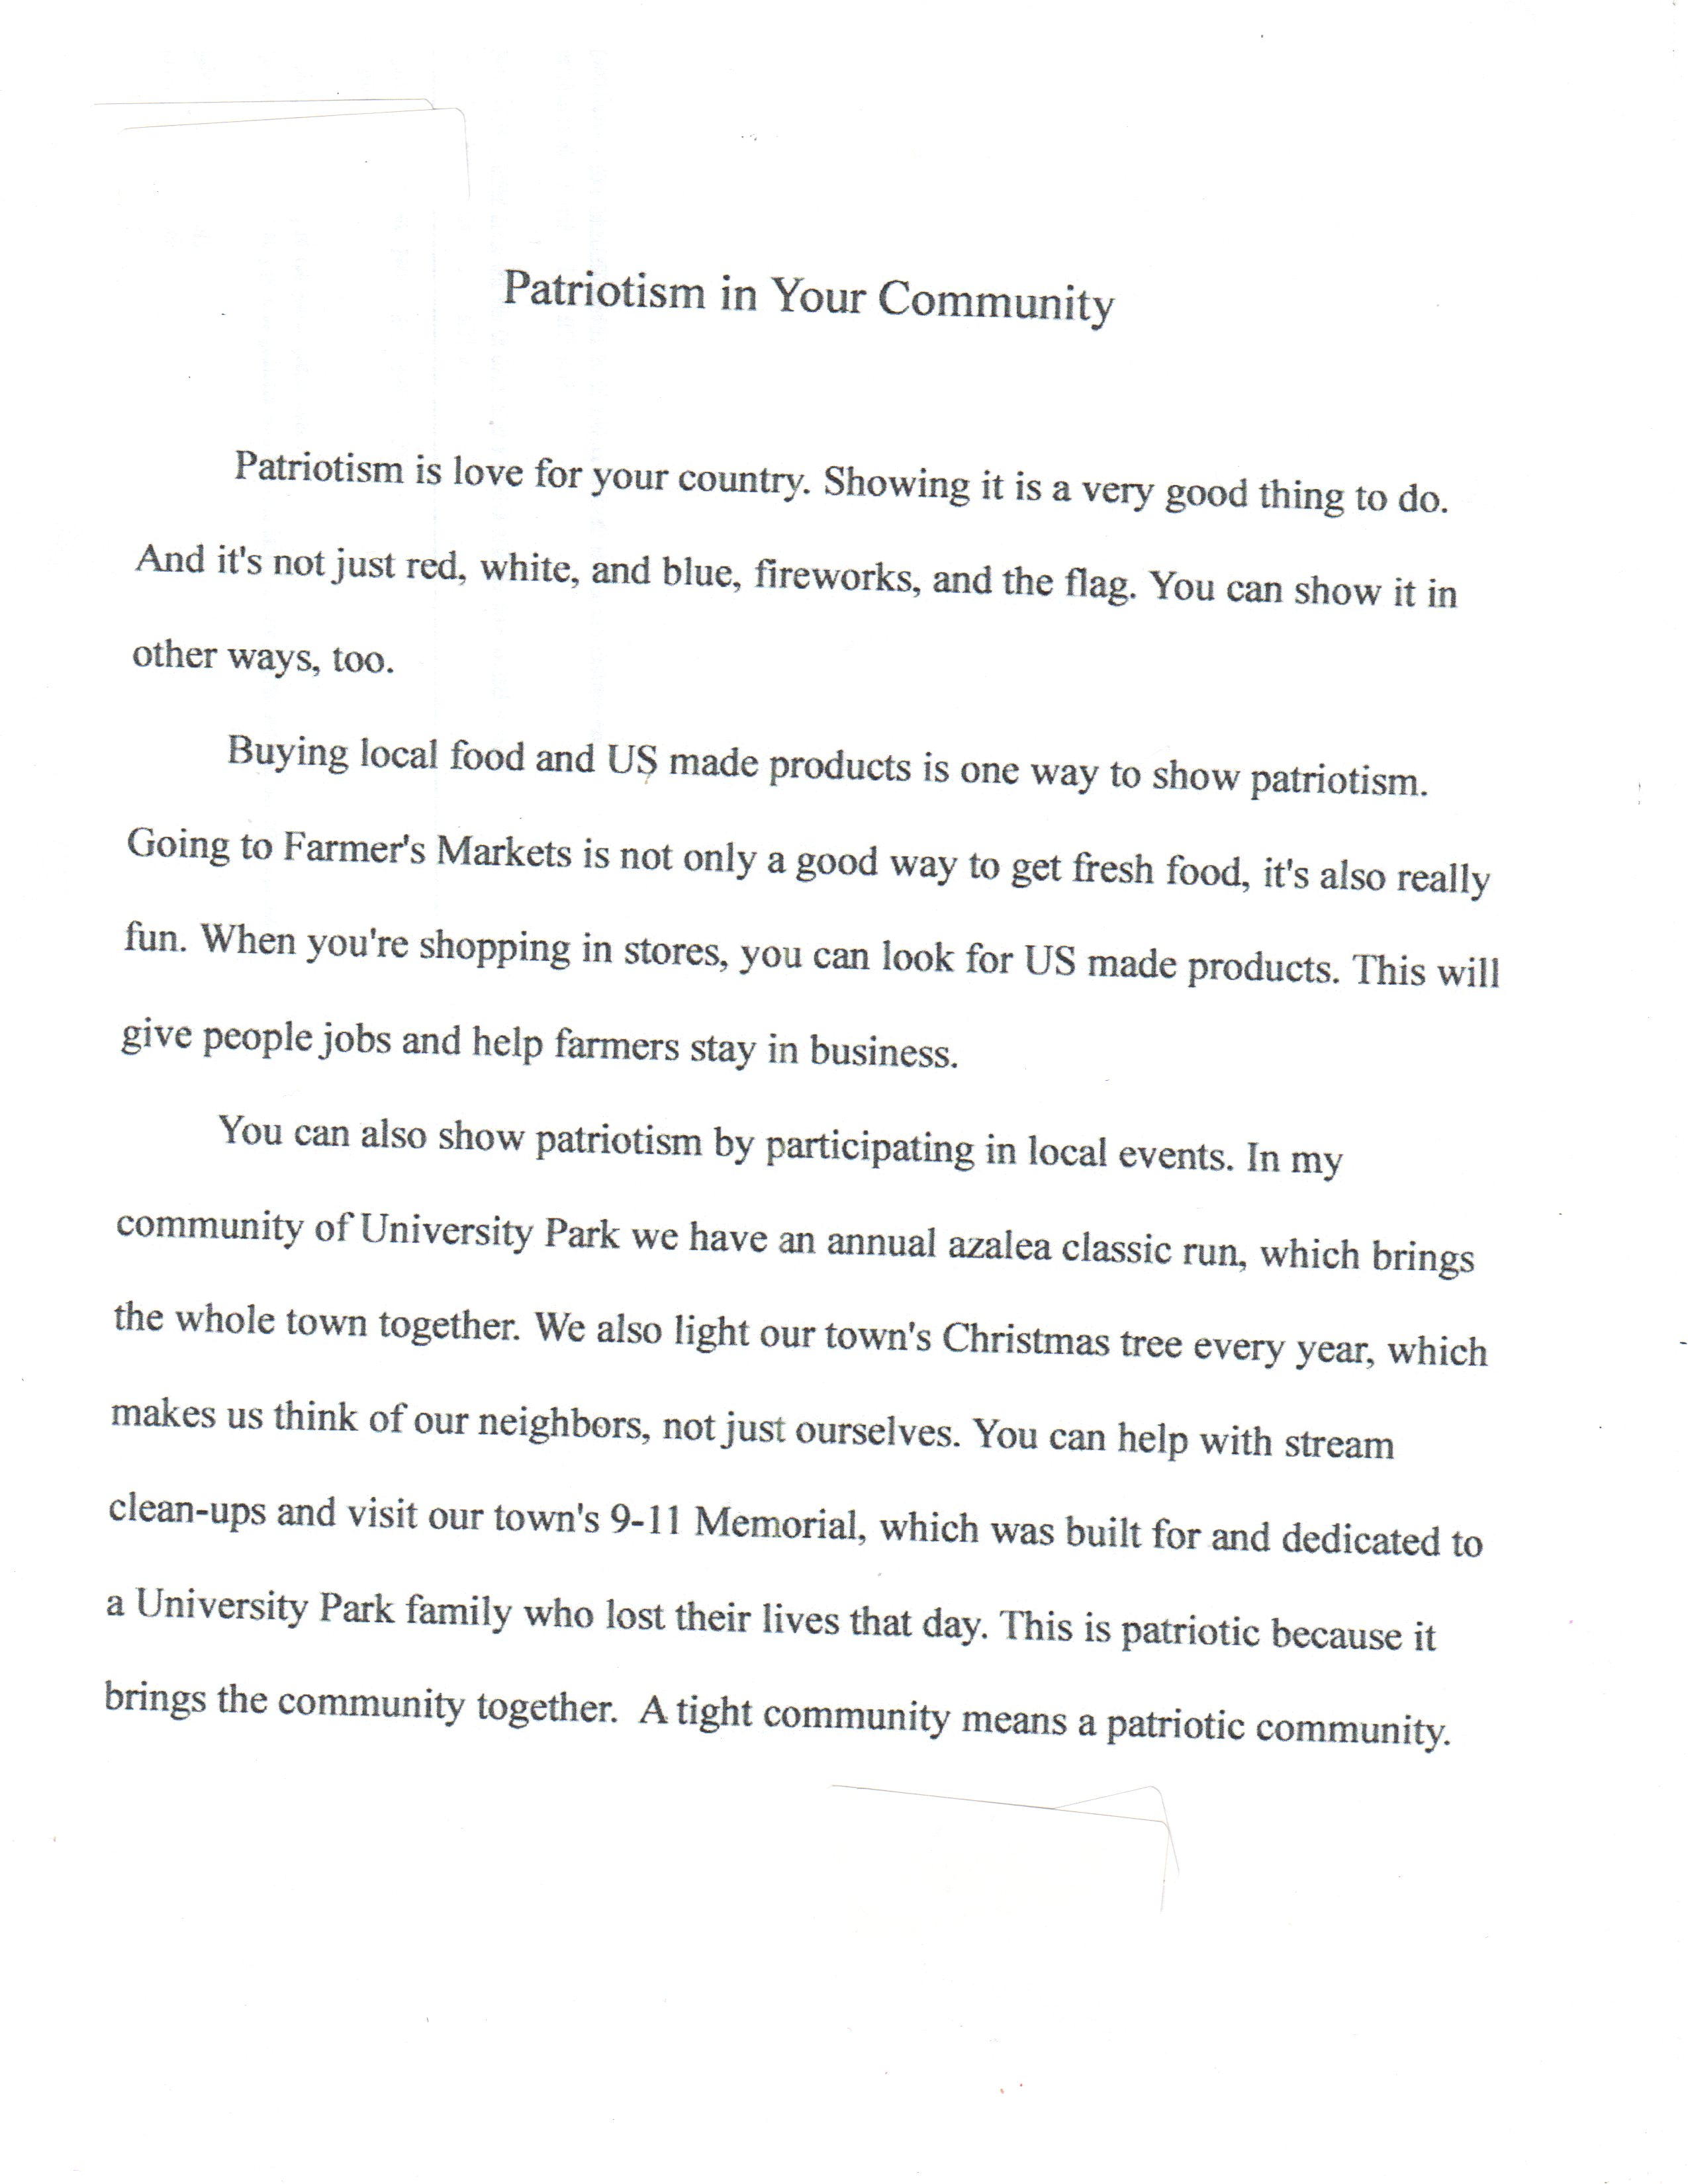 009 Americanism Essay Contest Example Astounding Amvets 2017 For Grades 7–12 Education Leaders Full